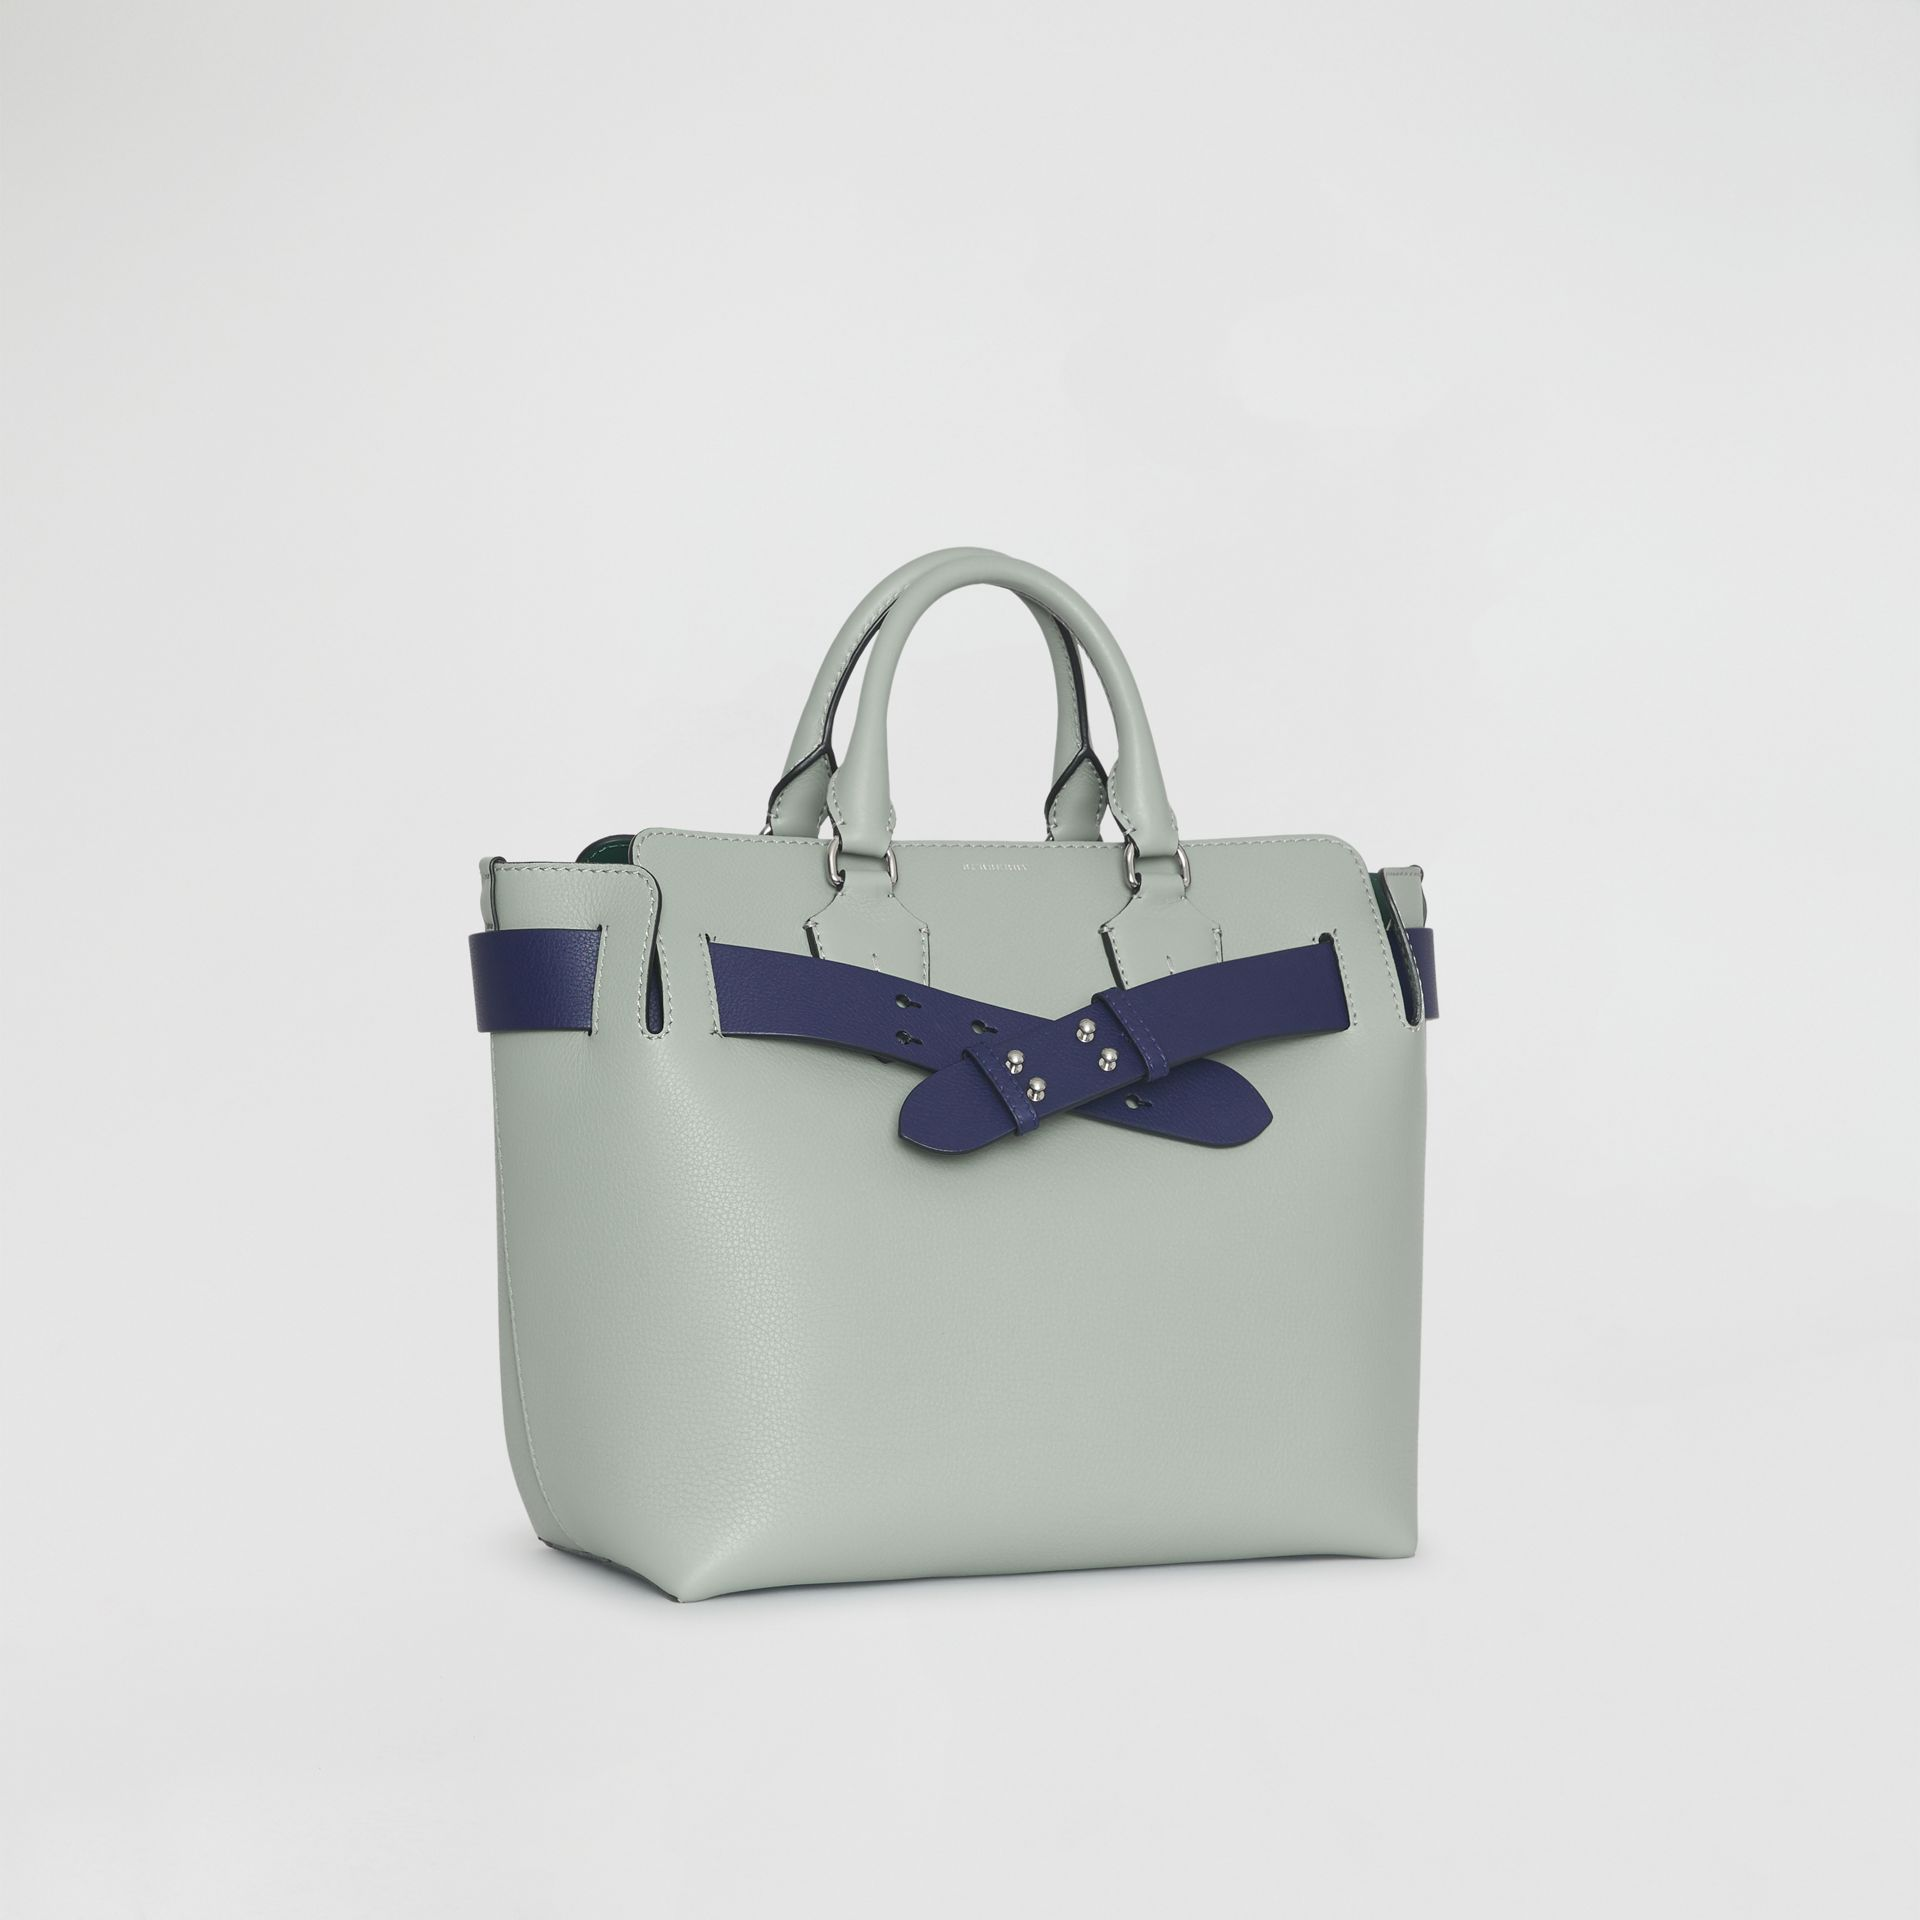 Borsa The Belt media in pelle (Blu Grigio) - Donna | Burberry - immagine della galleria 6